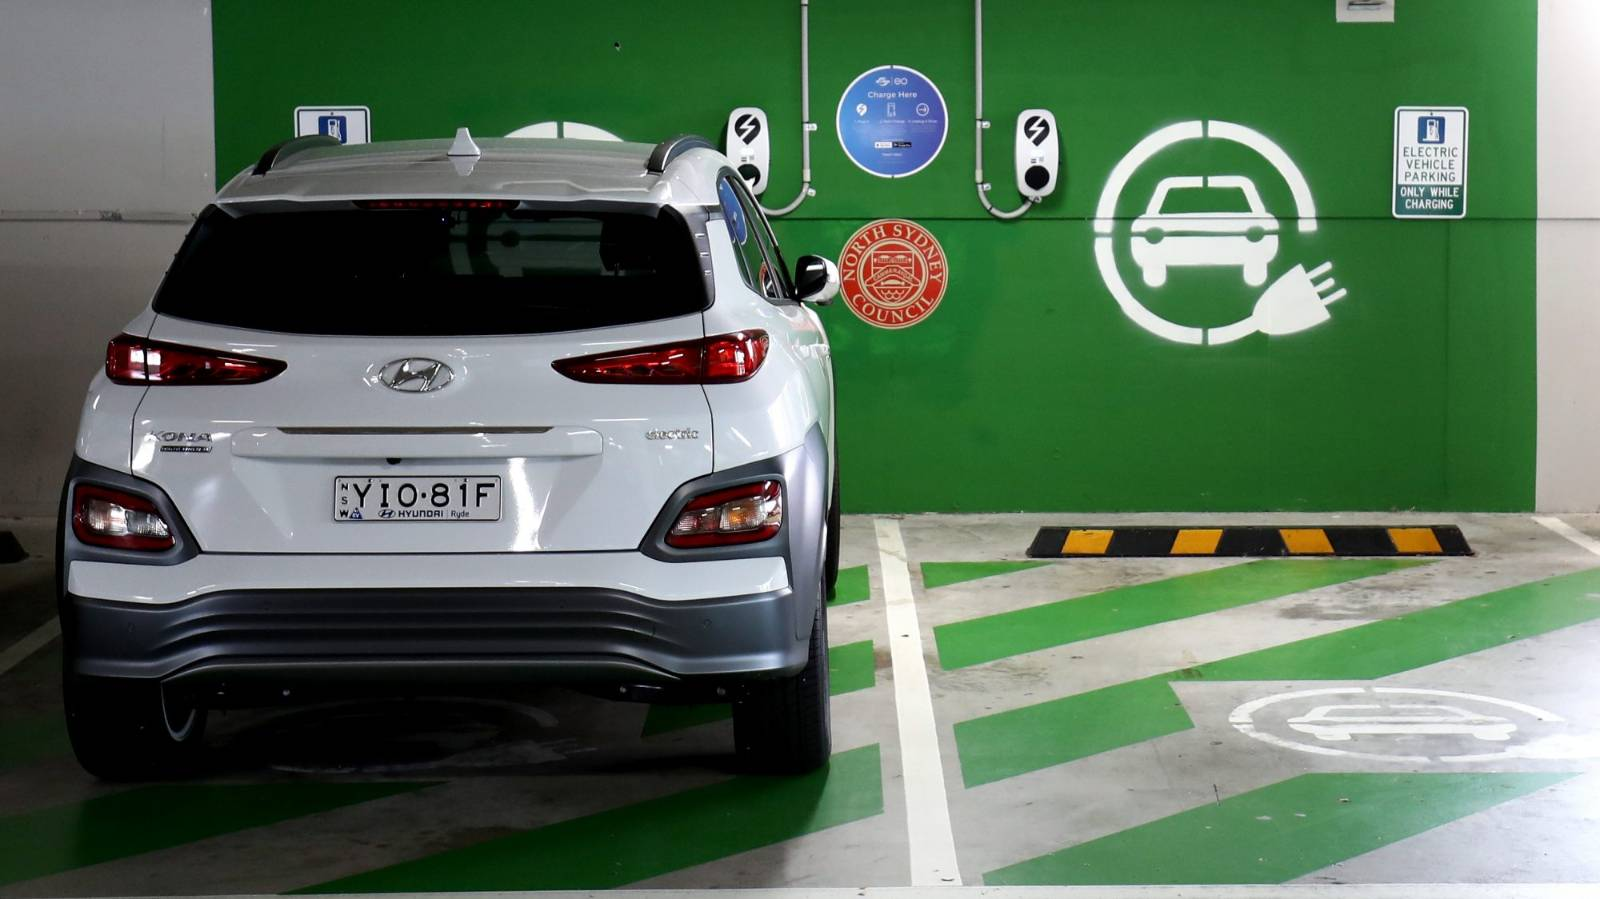 Hyundai's electric vehicles are catching fire overseas